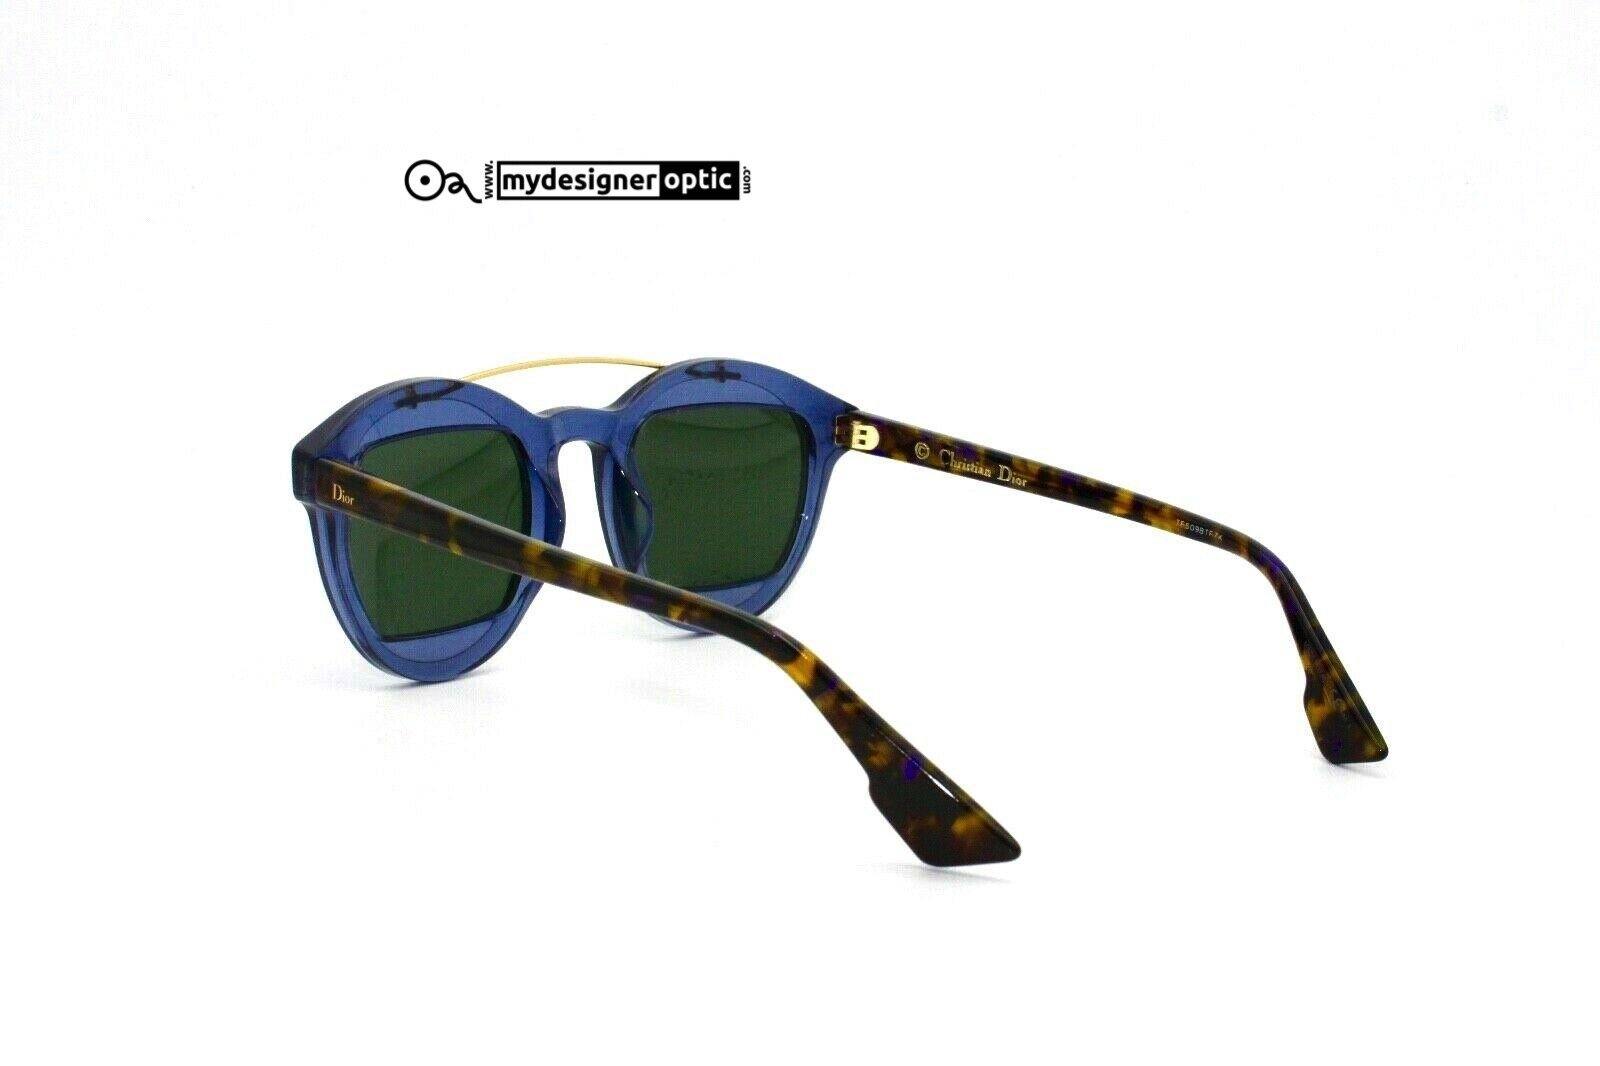 Christian Dior Sunglasses Dior Mania1 TF509BTF7K 50-24-24 Made in Italy - Mydesigneroptic